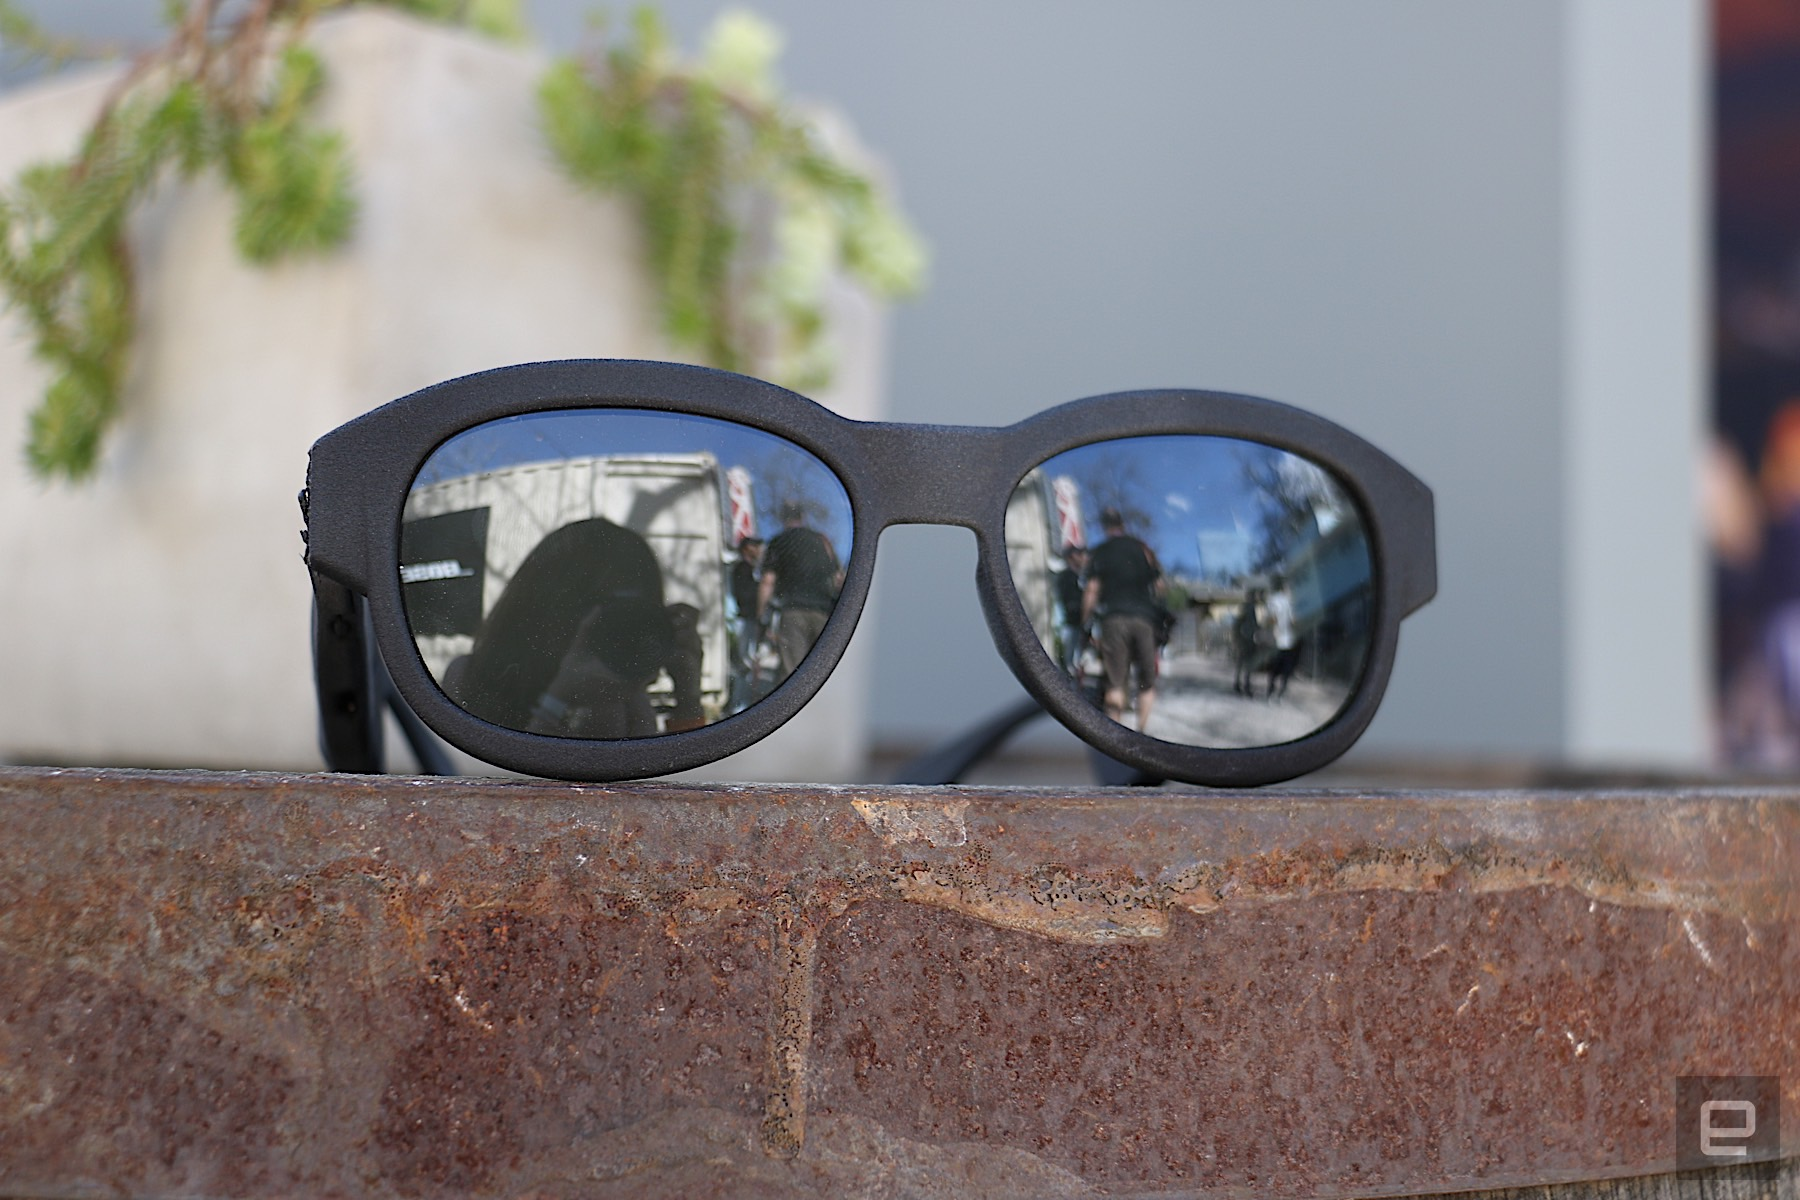 Bose AR Hands-On: Sonnenbrille mit Augmented Reality Audio